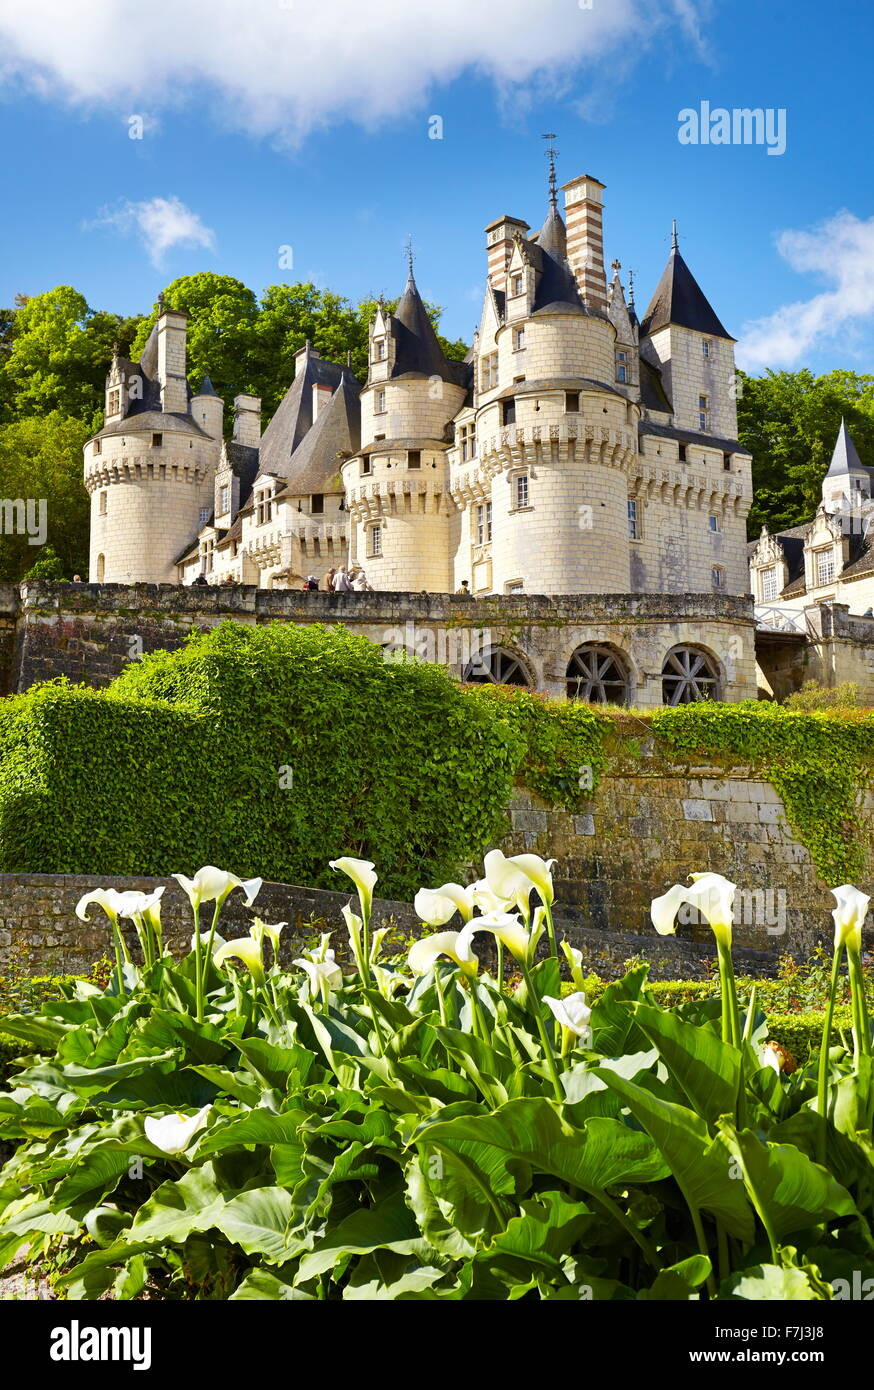 Château d'USSE, Usse, vallée de la Loire, France Photo Stock